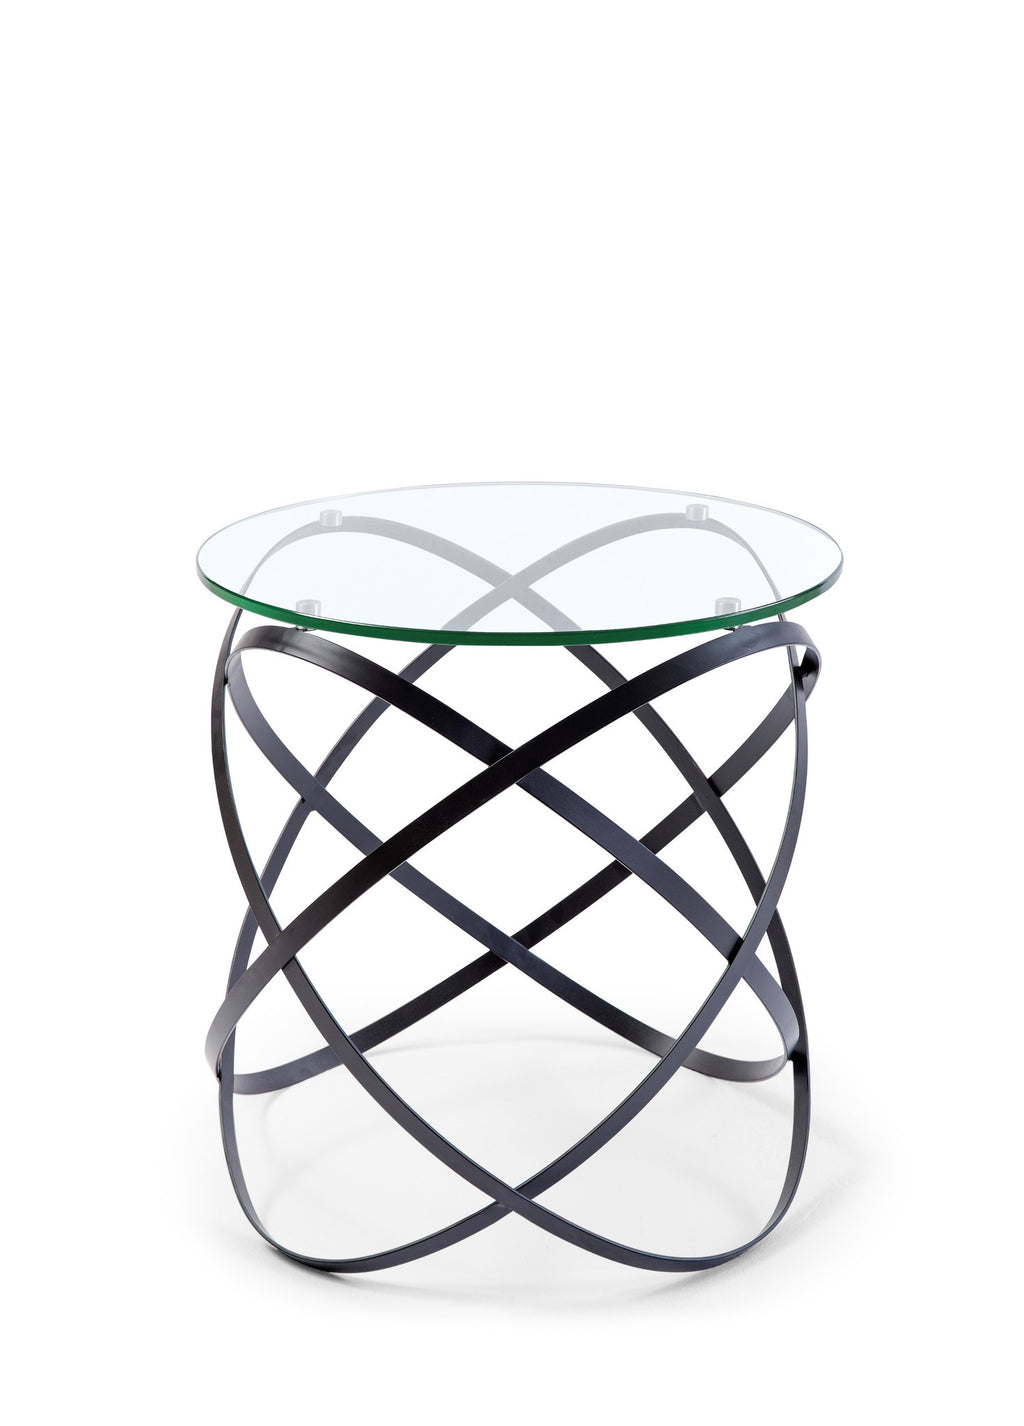 Infinity side table, 10mm clear glass top, black lacquer metal base